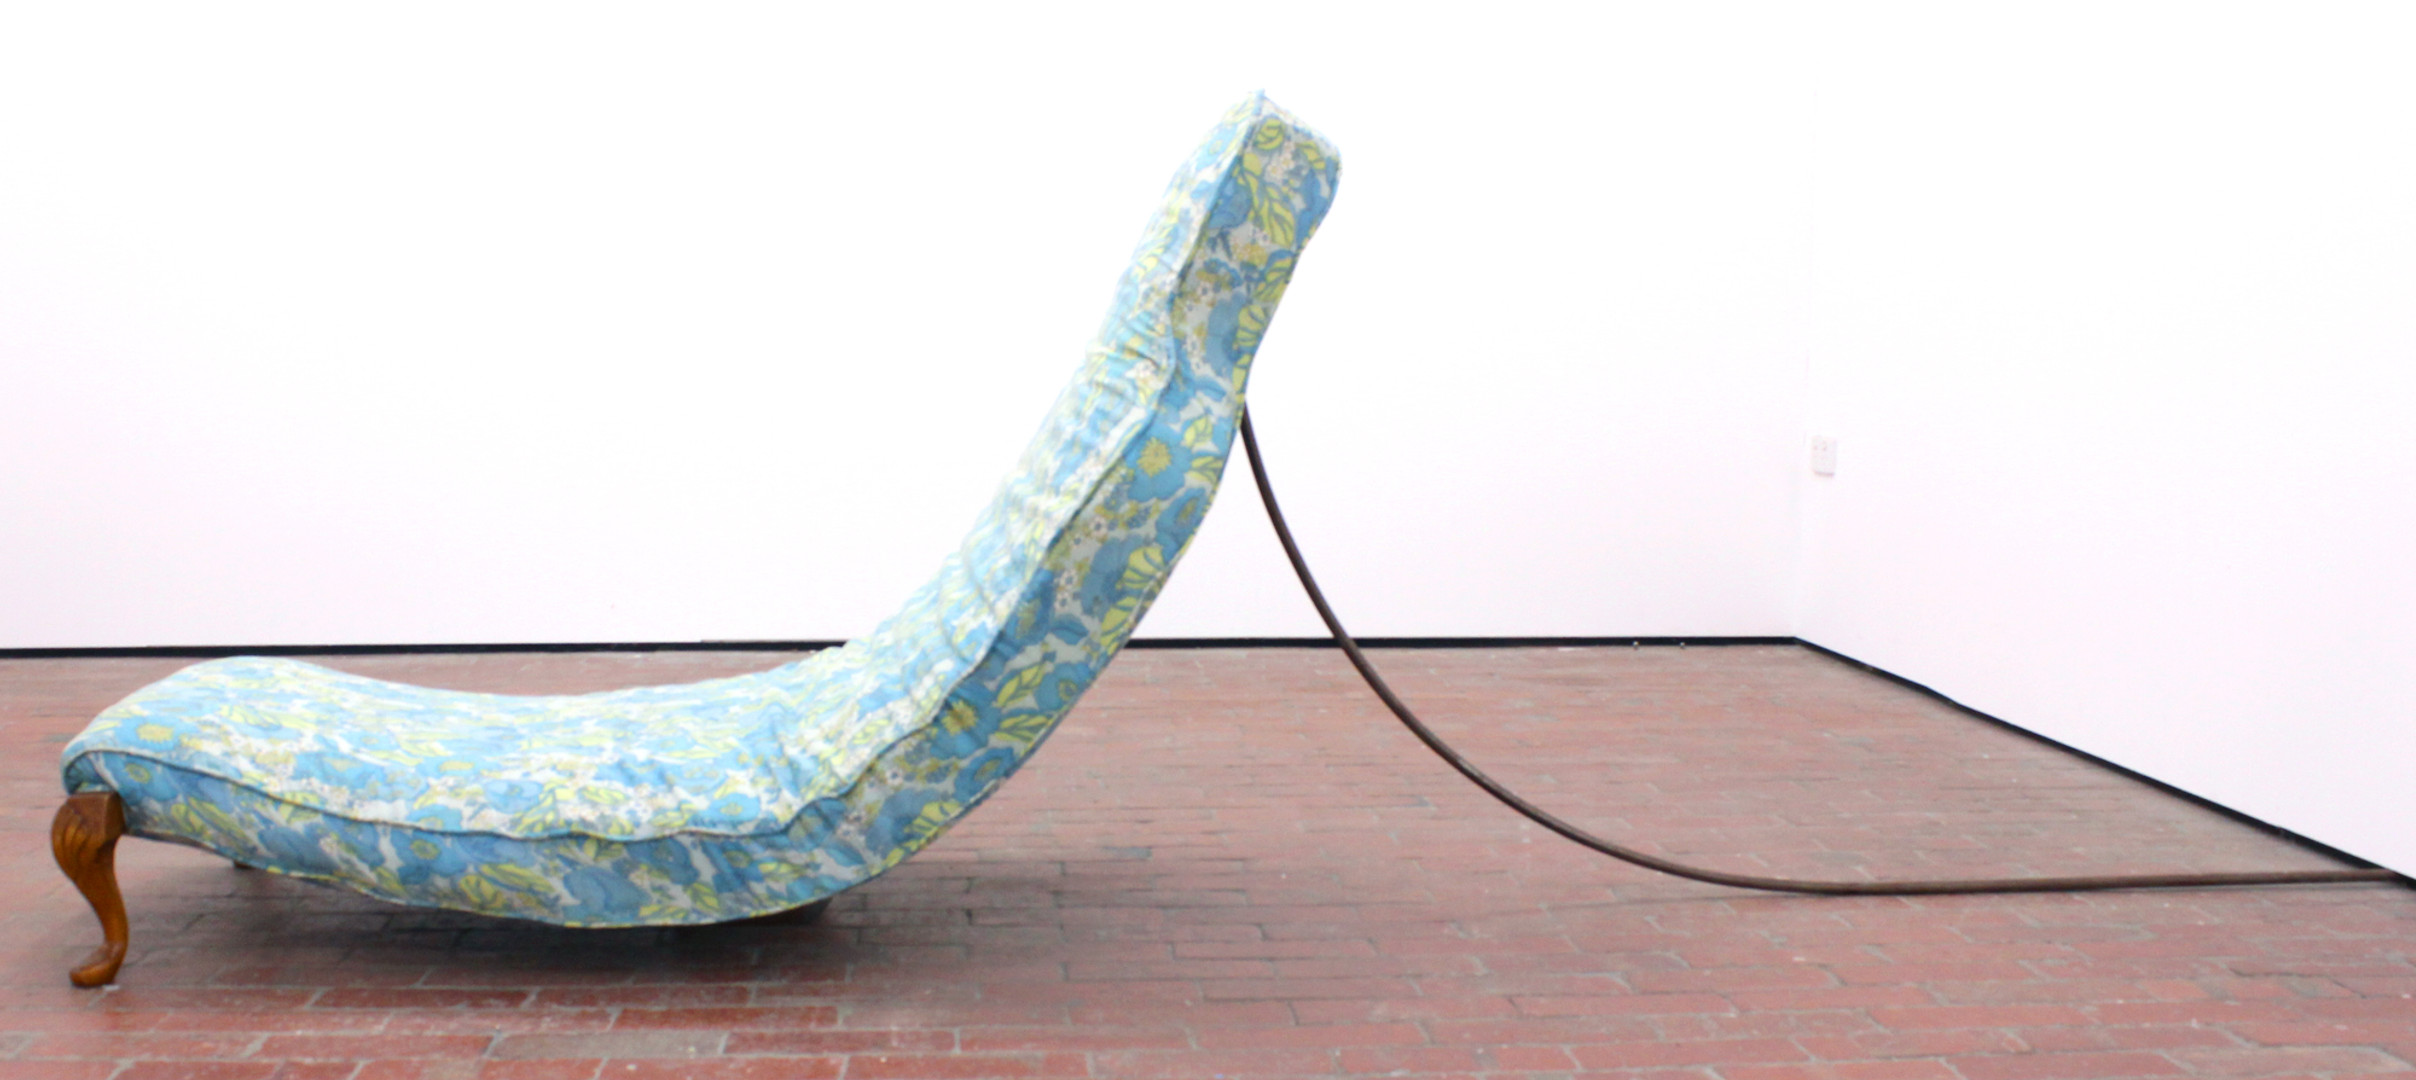 'Couch' Slump, 2014,  C3 Artspace Abbotsford.  Wood, upcycled fabric, wadding, copper. H 100cm x W 76cm x L 270cm.  Image courtesy of the Artist